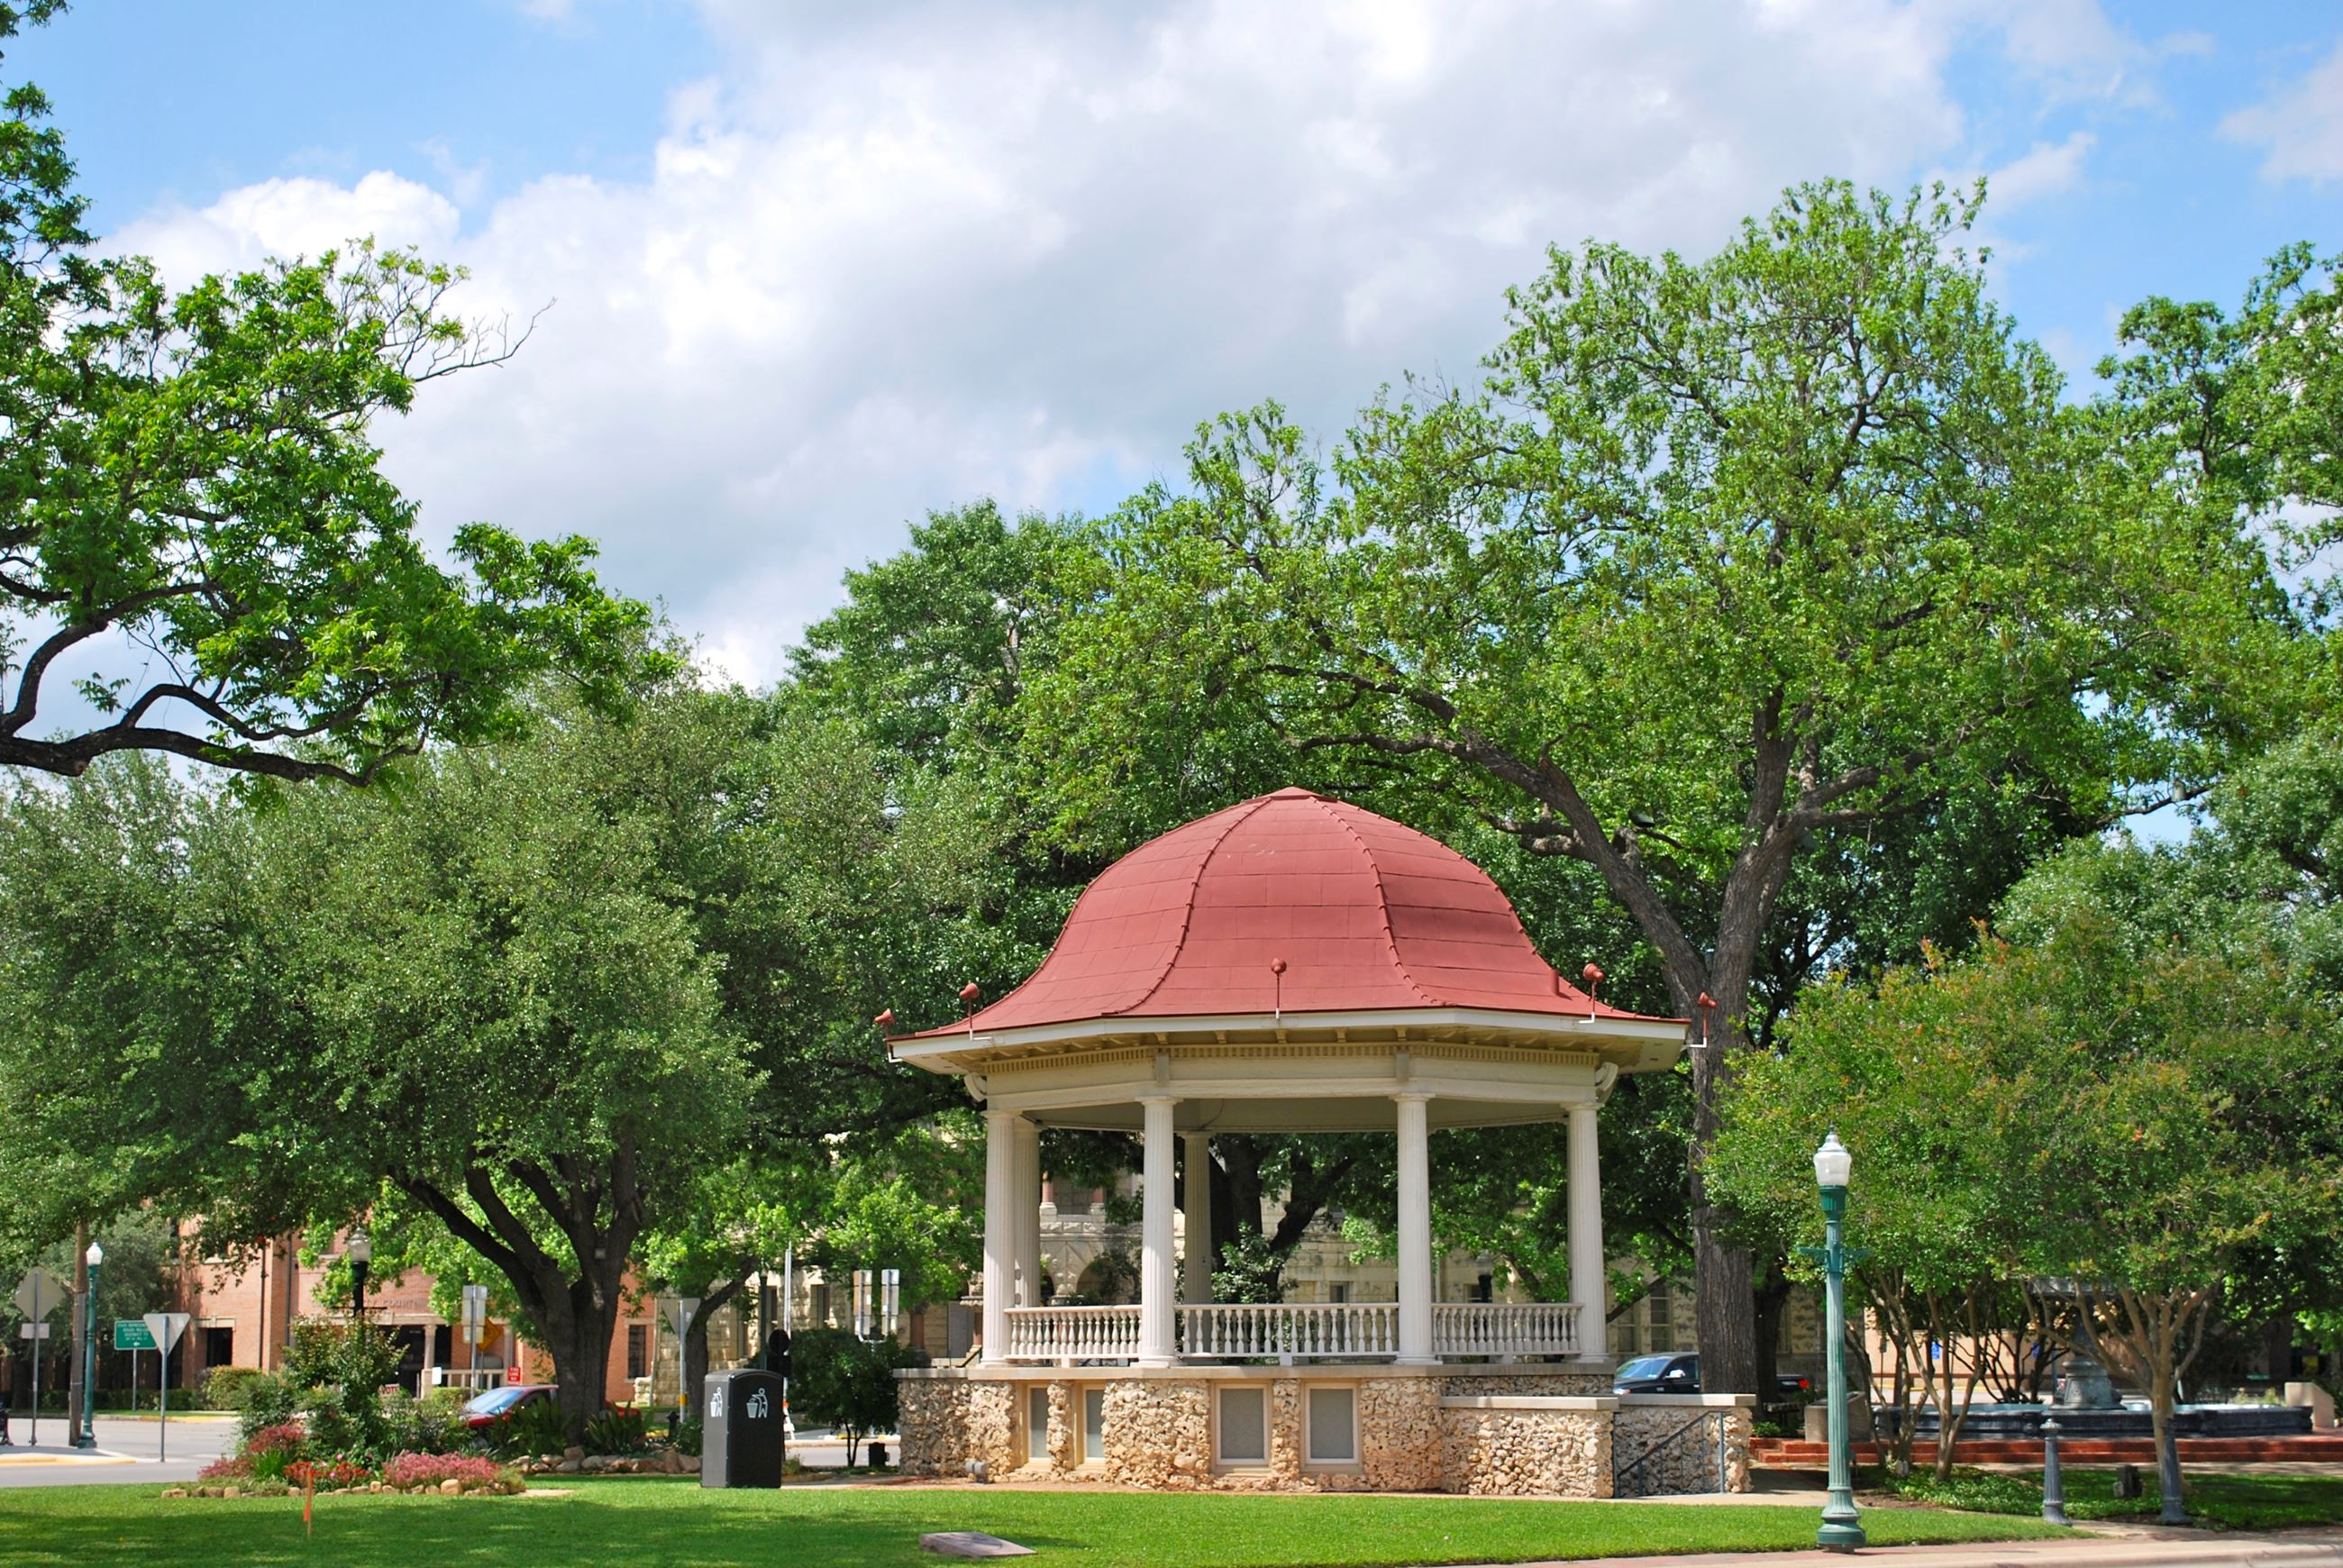 Downtown Bandstand